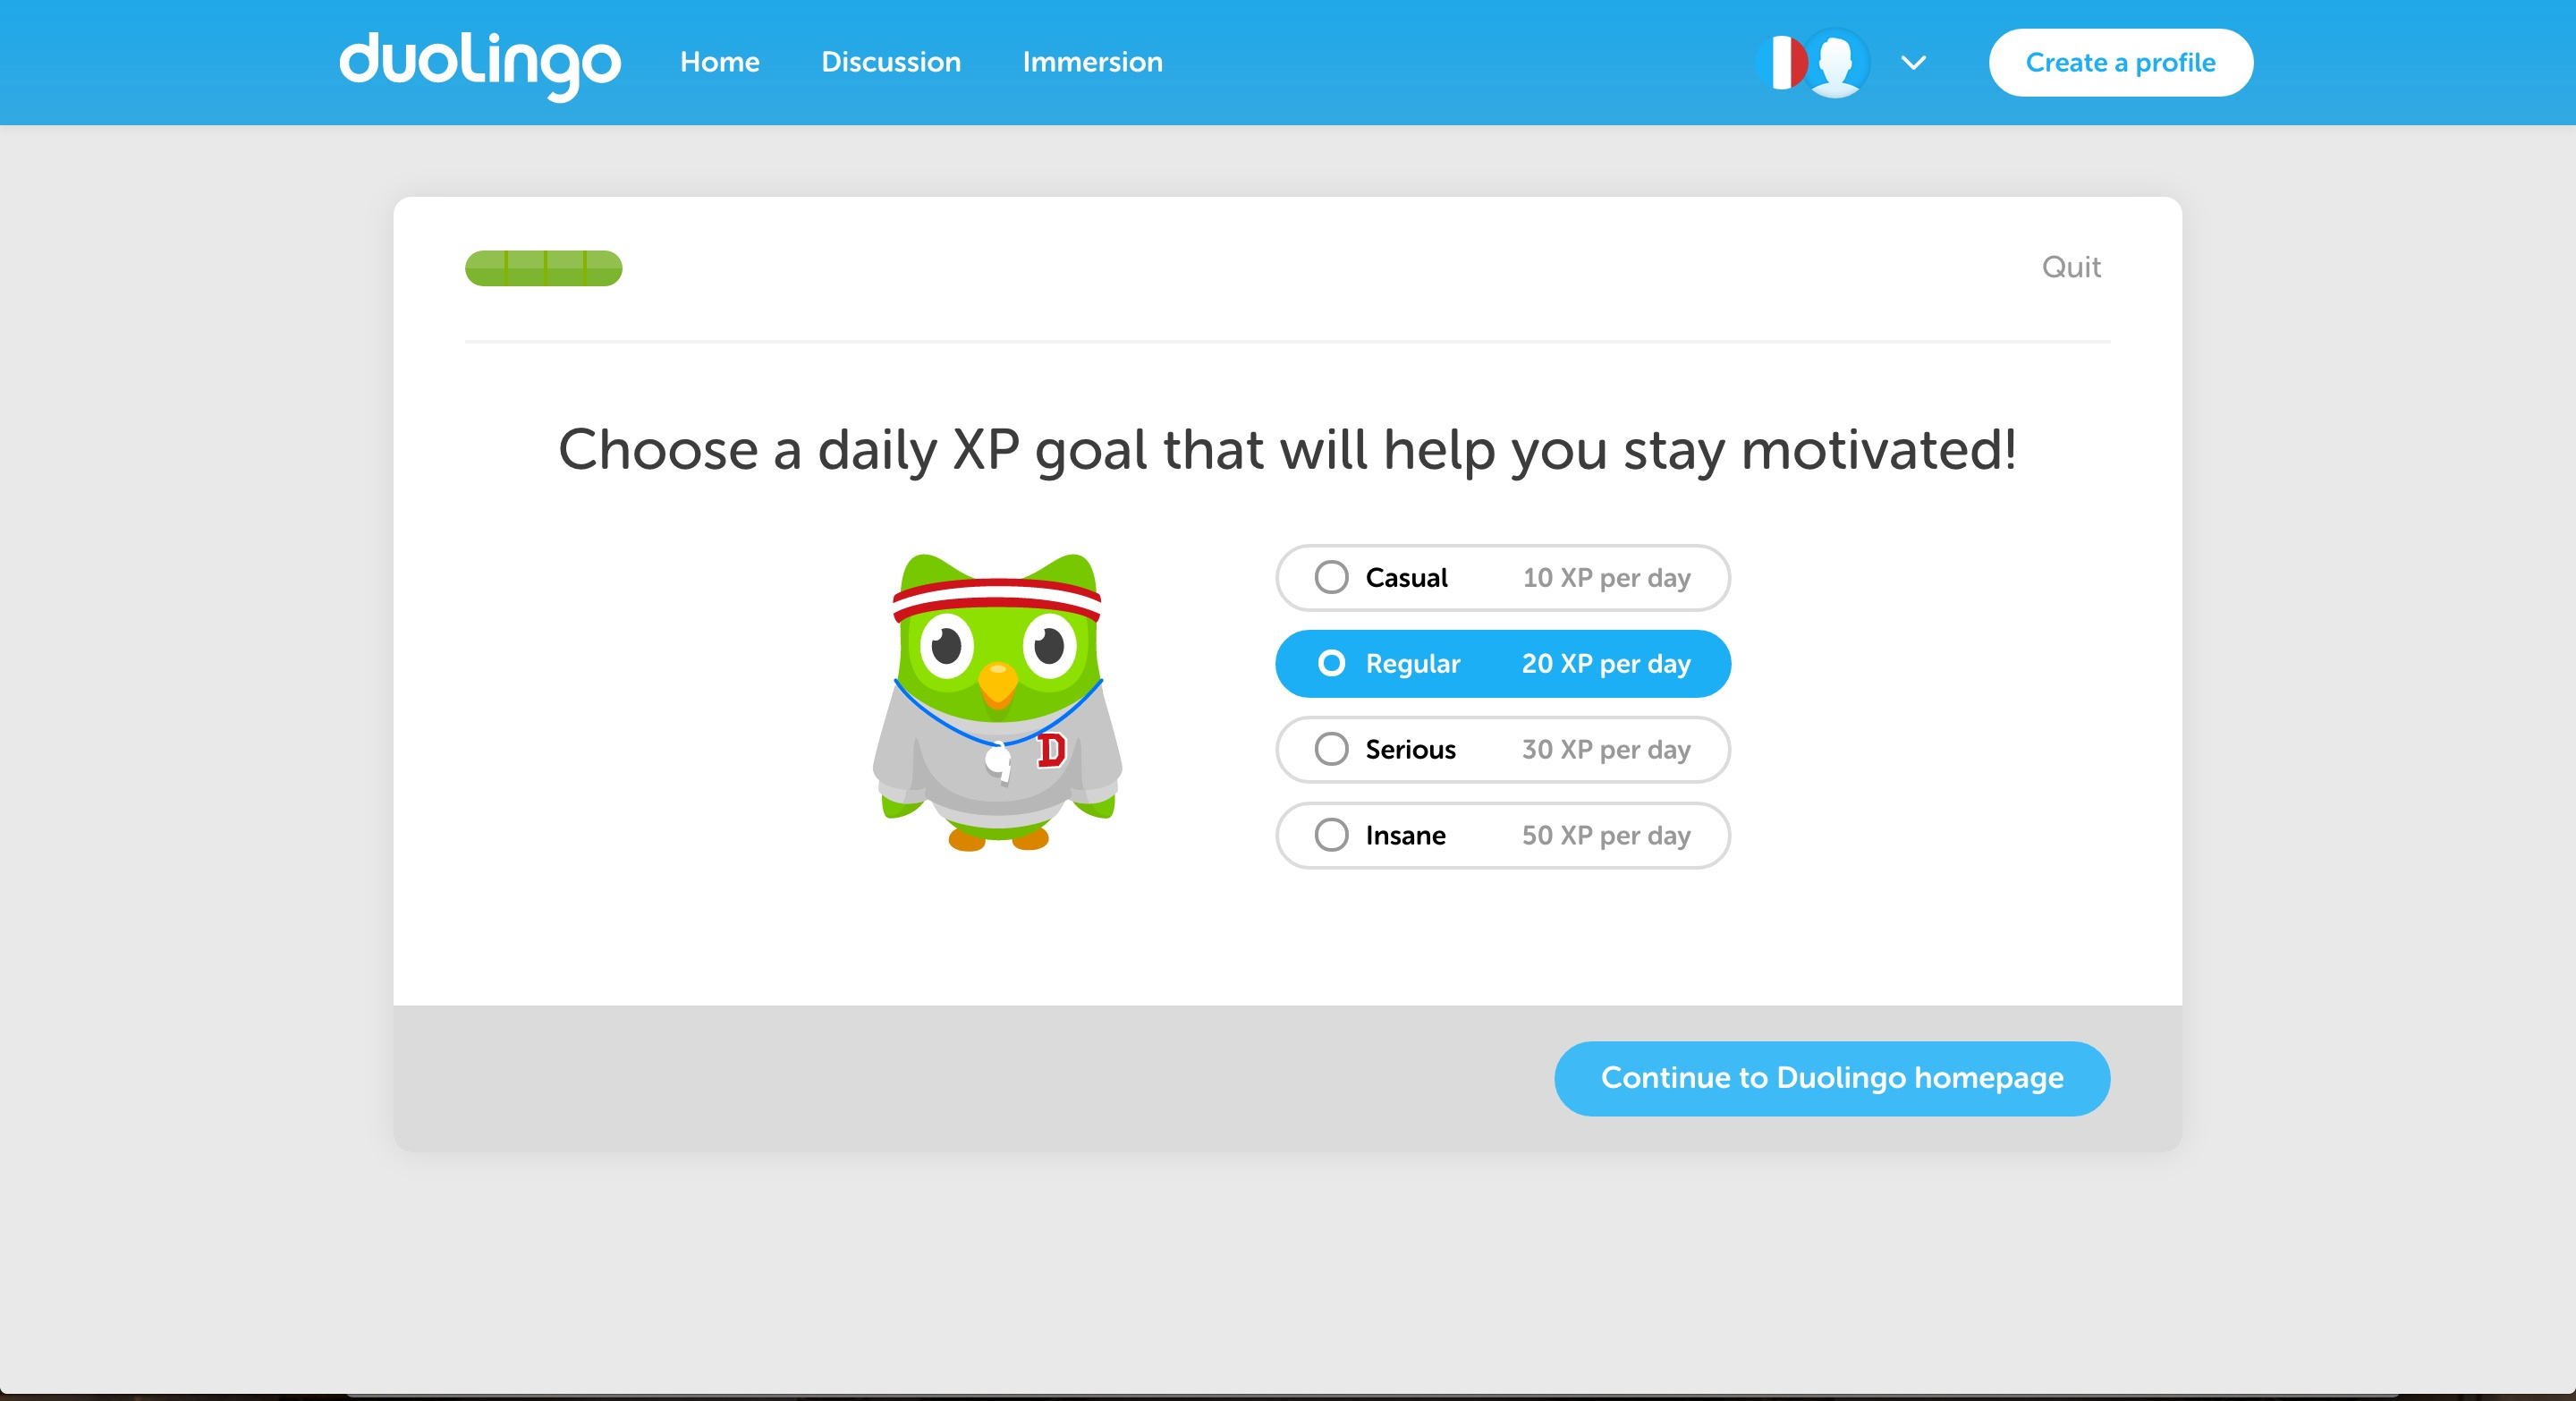 duolingo goal setting during user onboarding